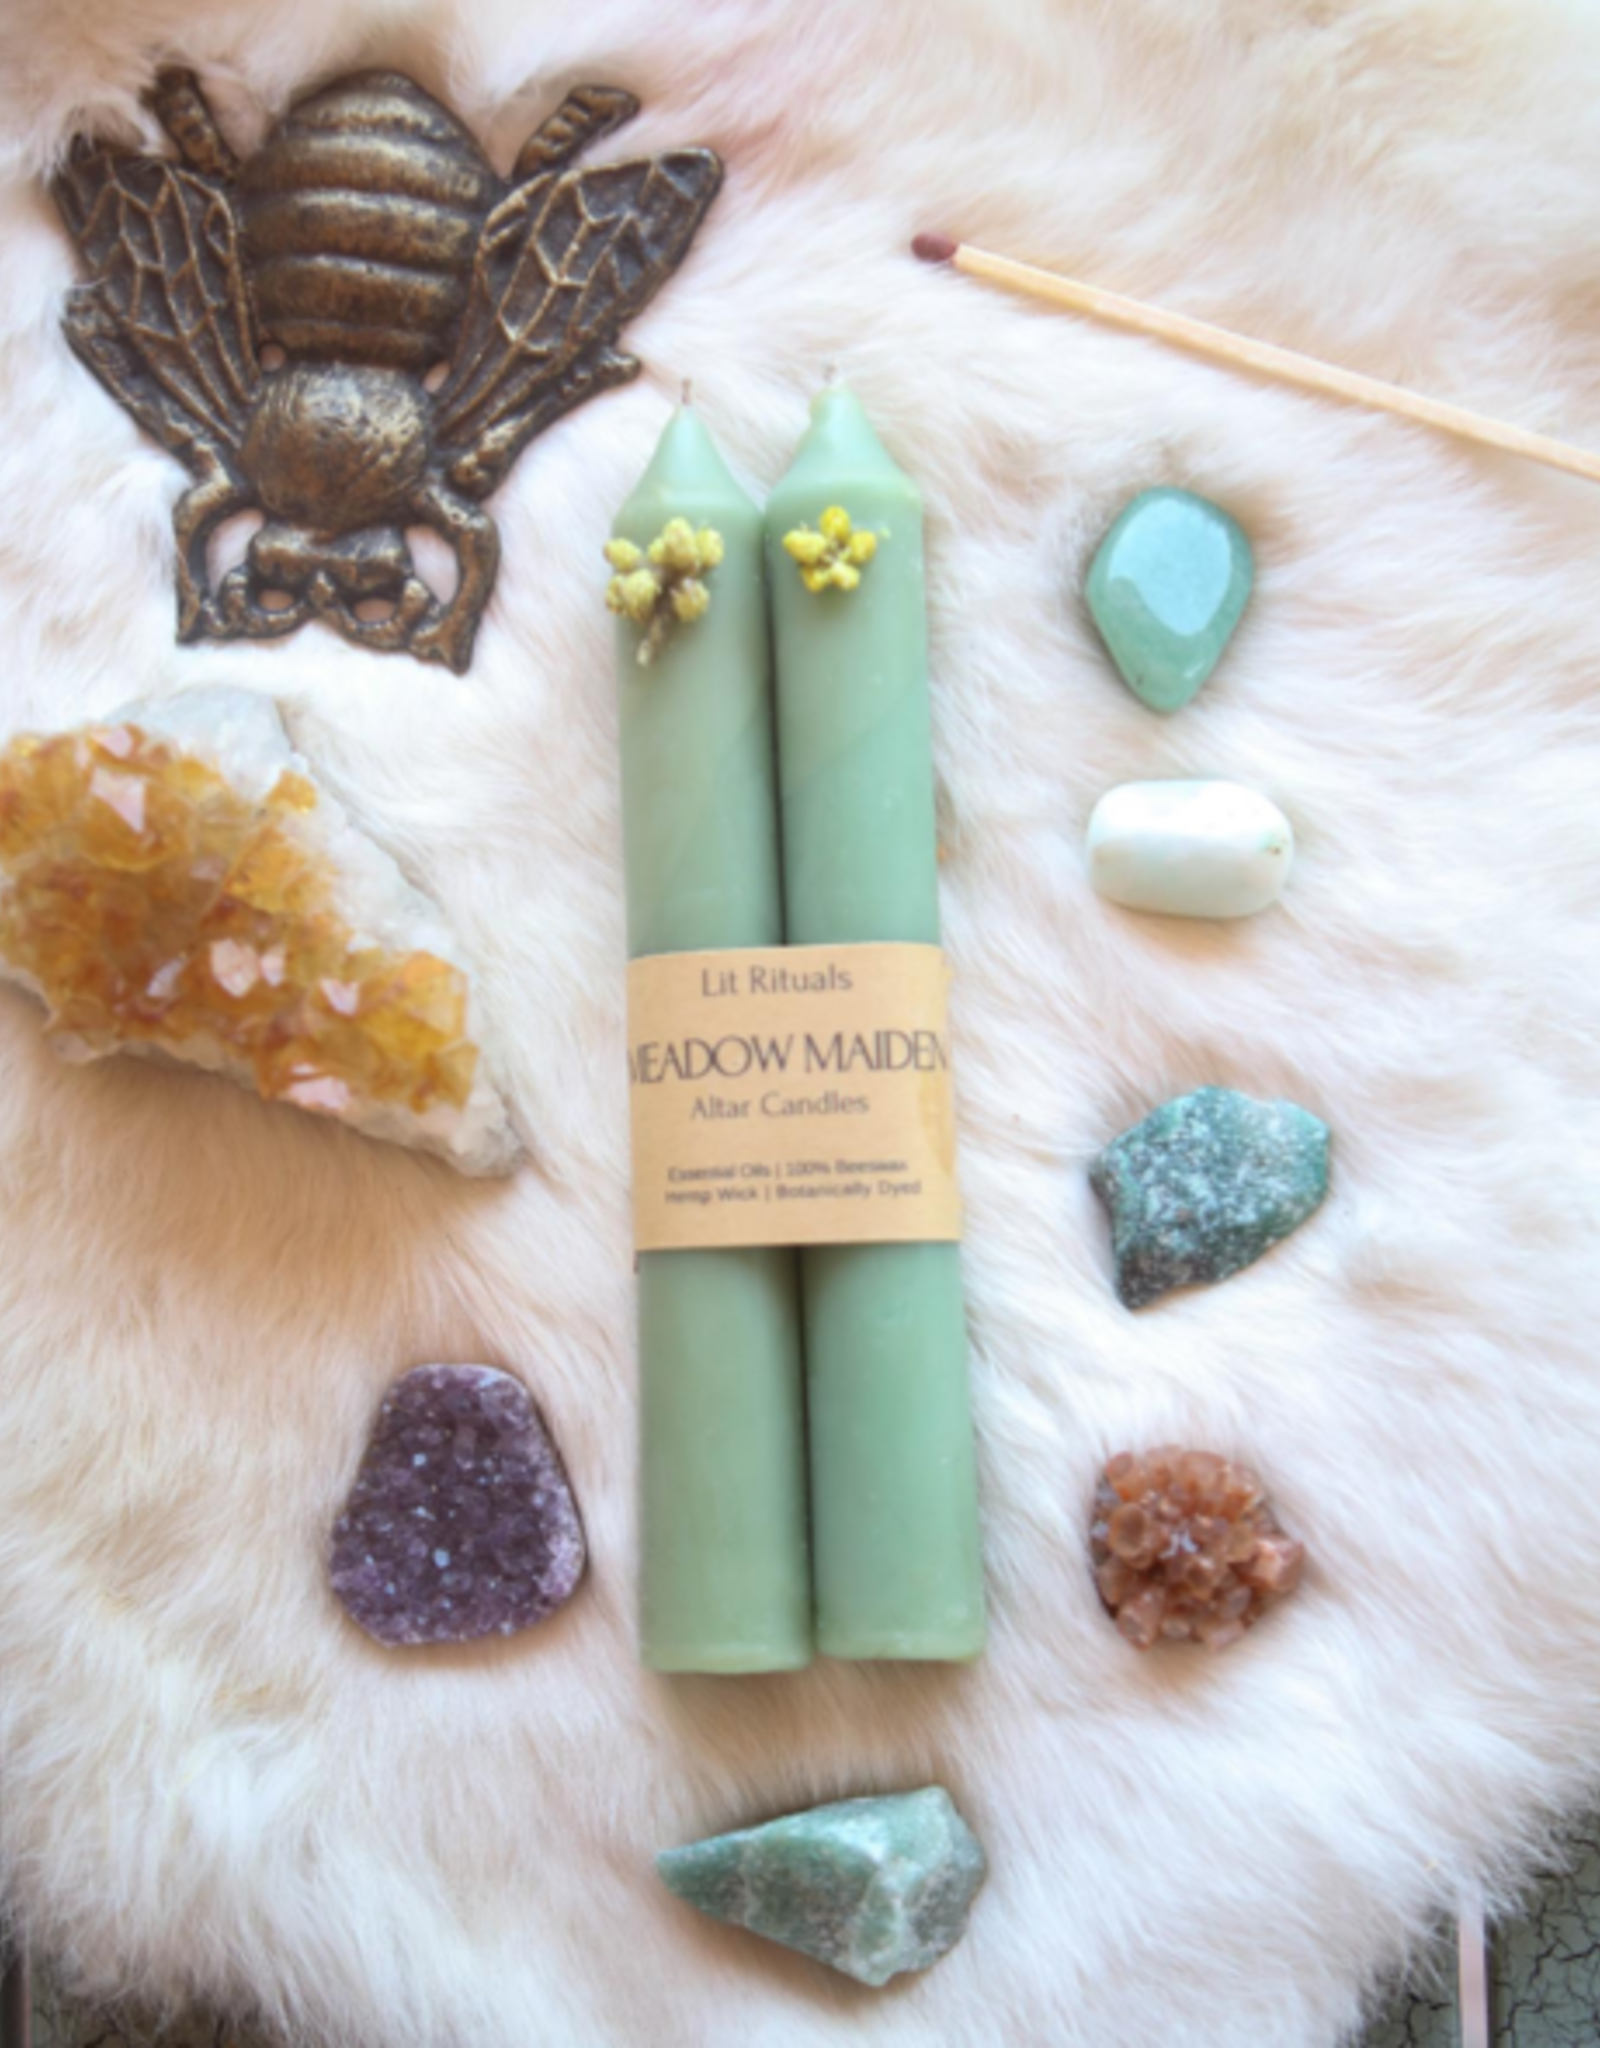 Litrituals Large 'Meadow Maiden' Beeswax Altar Candles